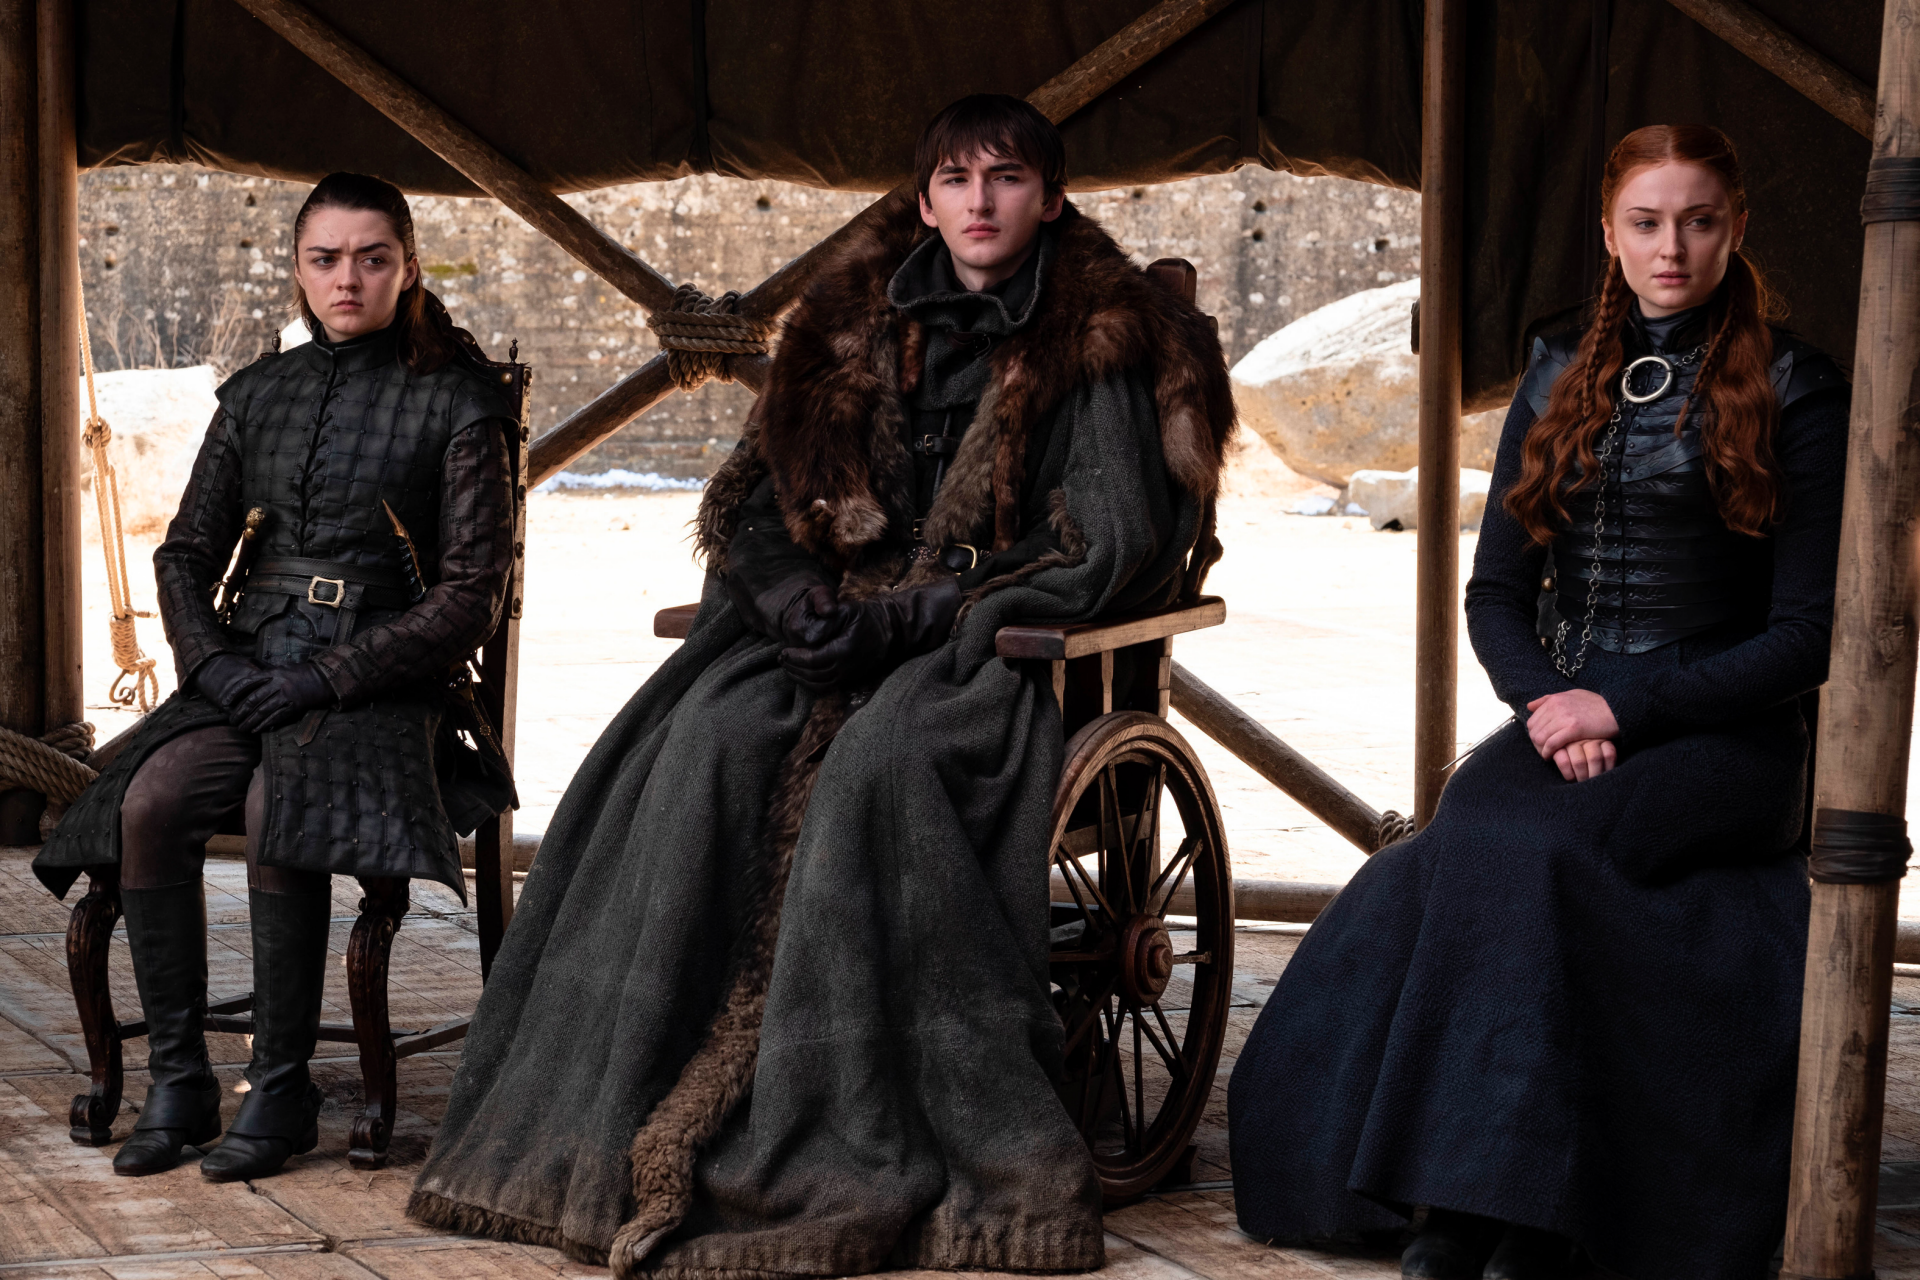 Game of Thrones: Economics of mercy and other final lessons